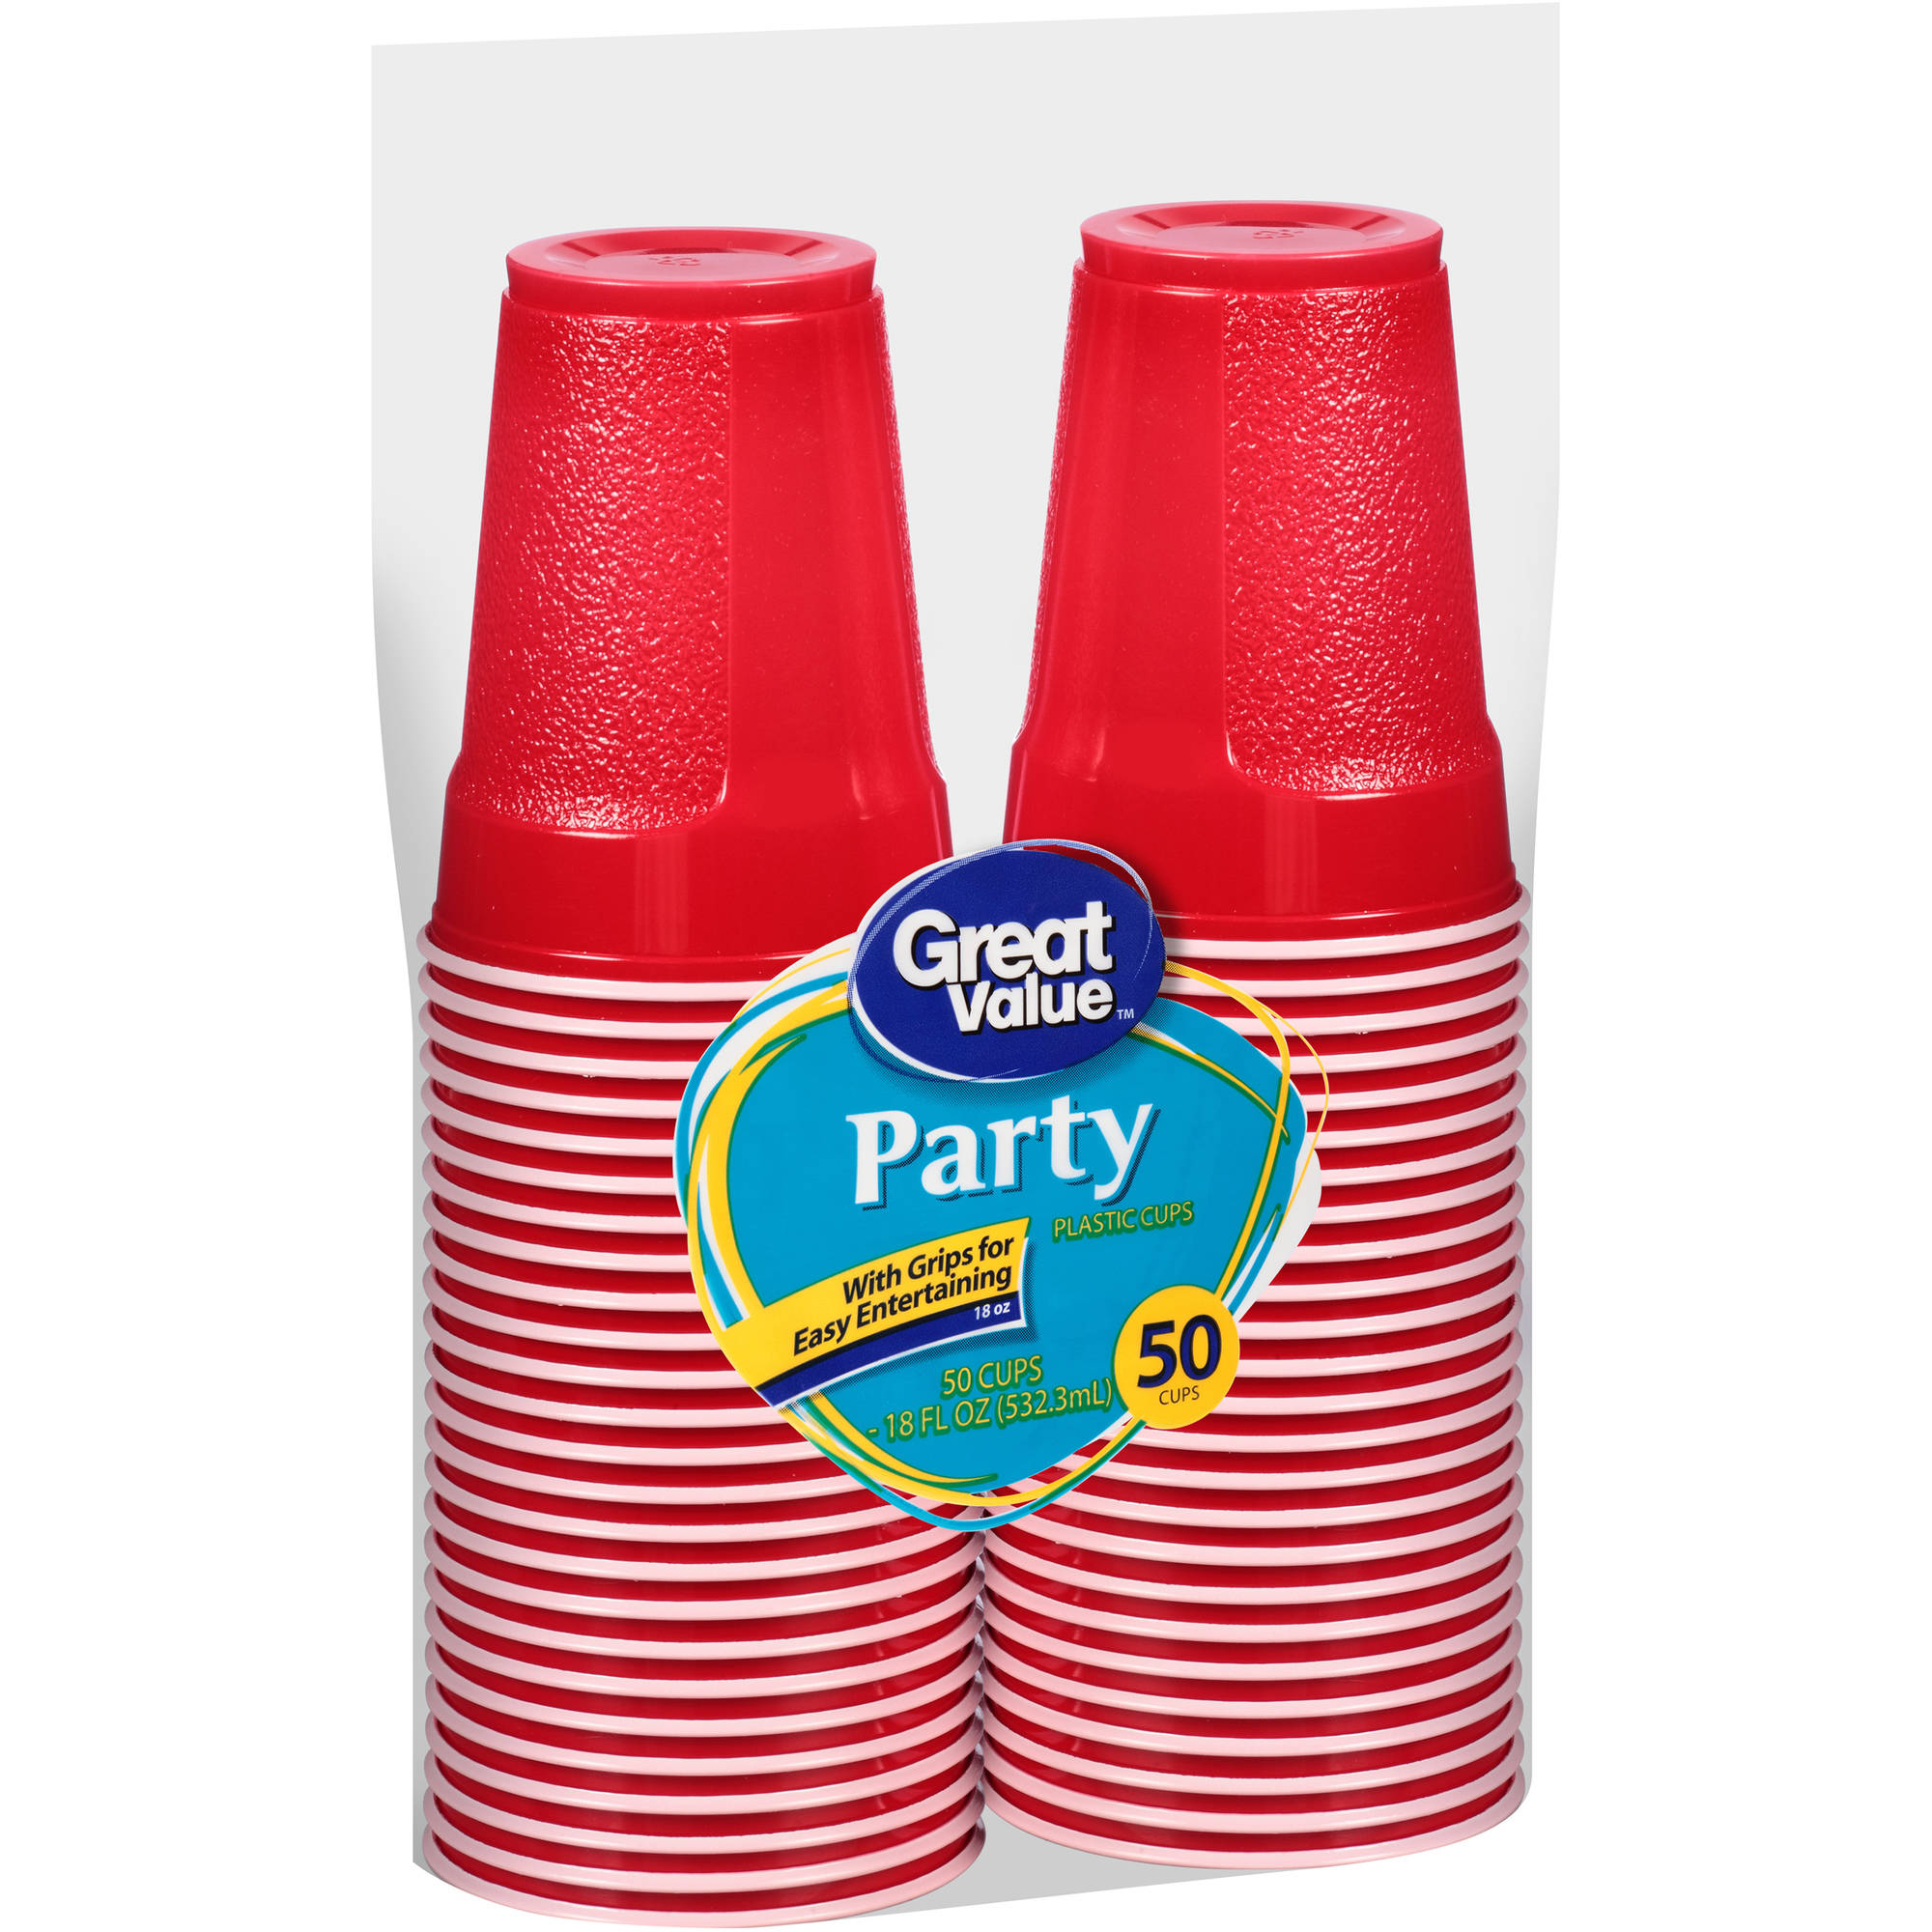 Great Value 18 Oz Grip Party Cups, 50ct